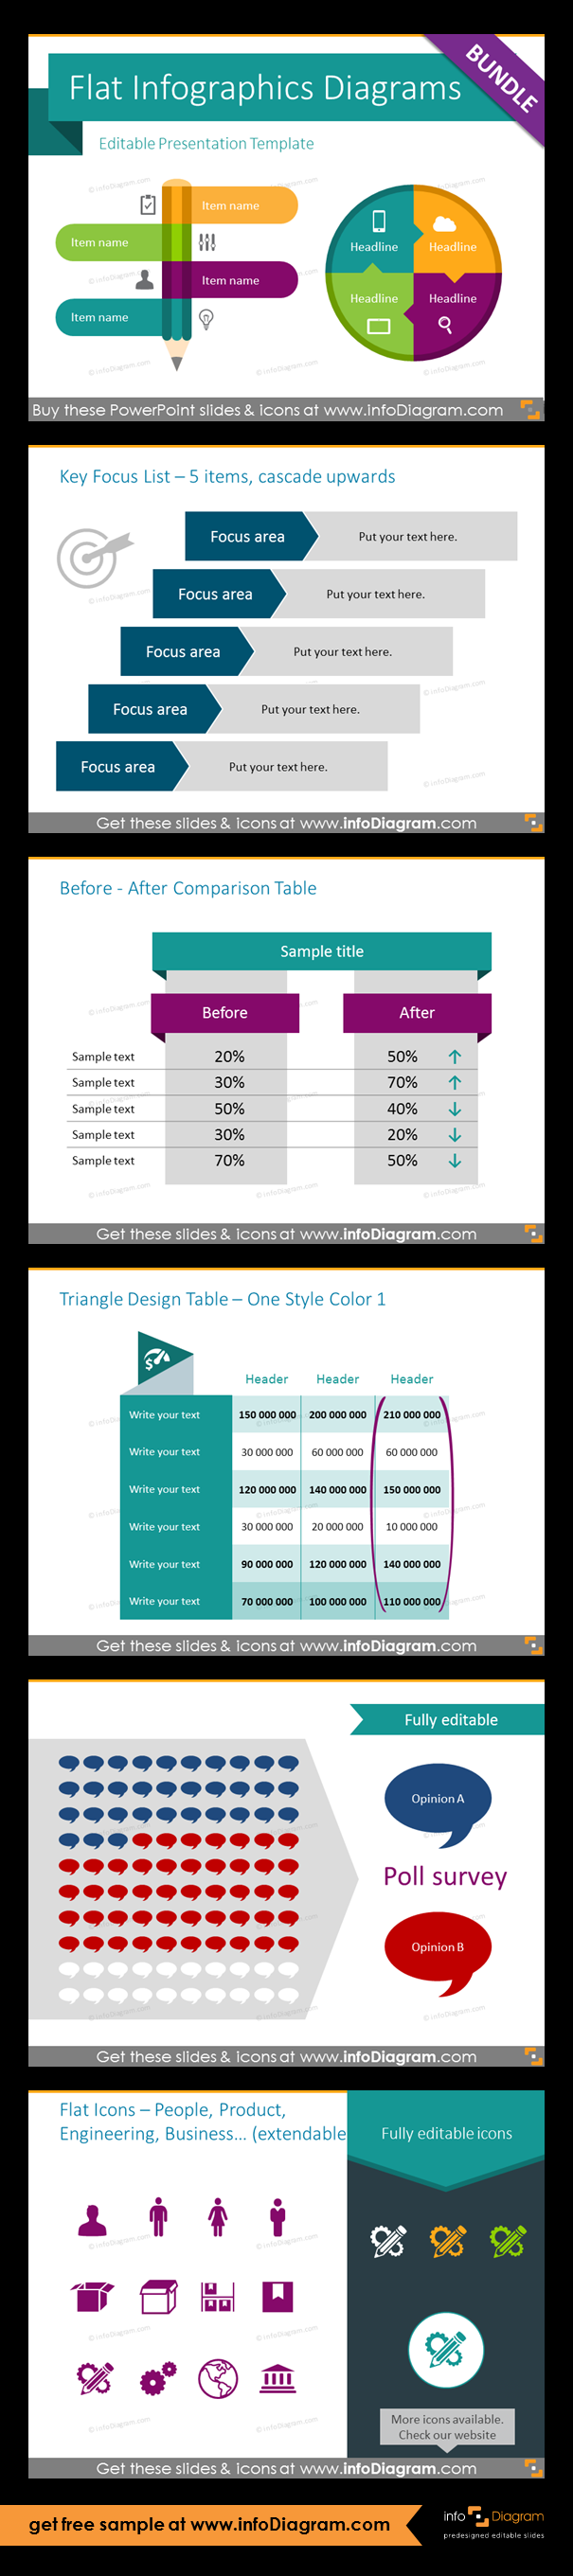 Flat Infographic Templates Design Bundle (PPT diagrams and icons ...